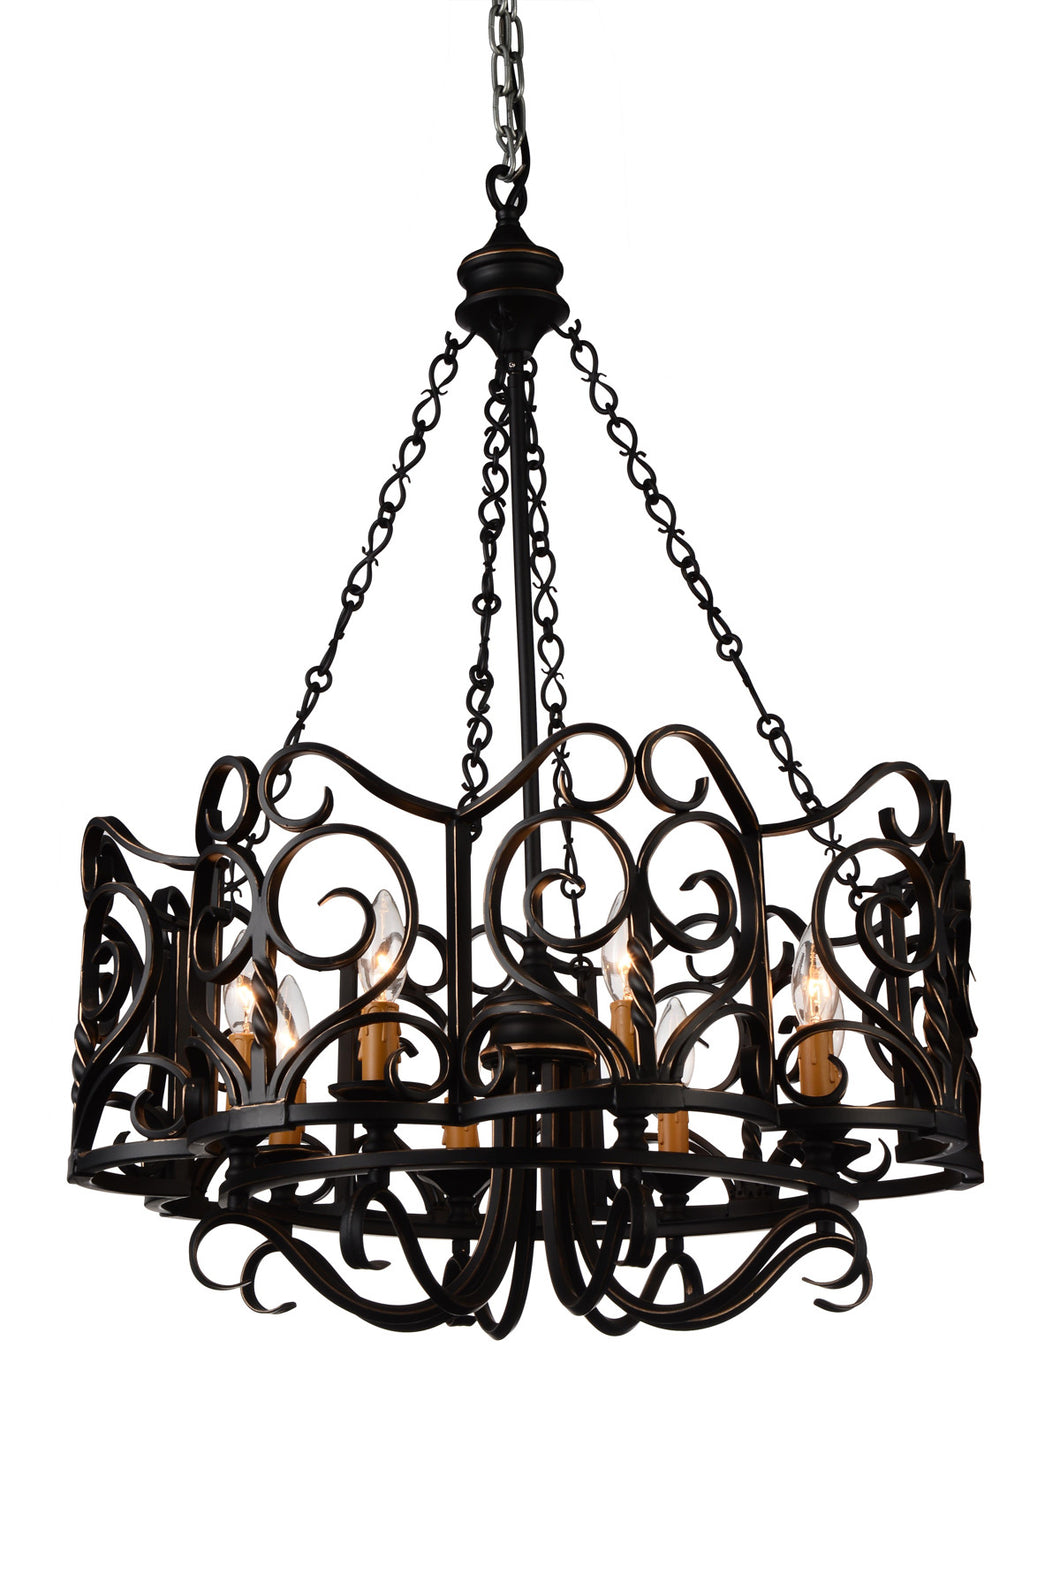 8 Light Up Chandelier with Autumn Bronze finish